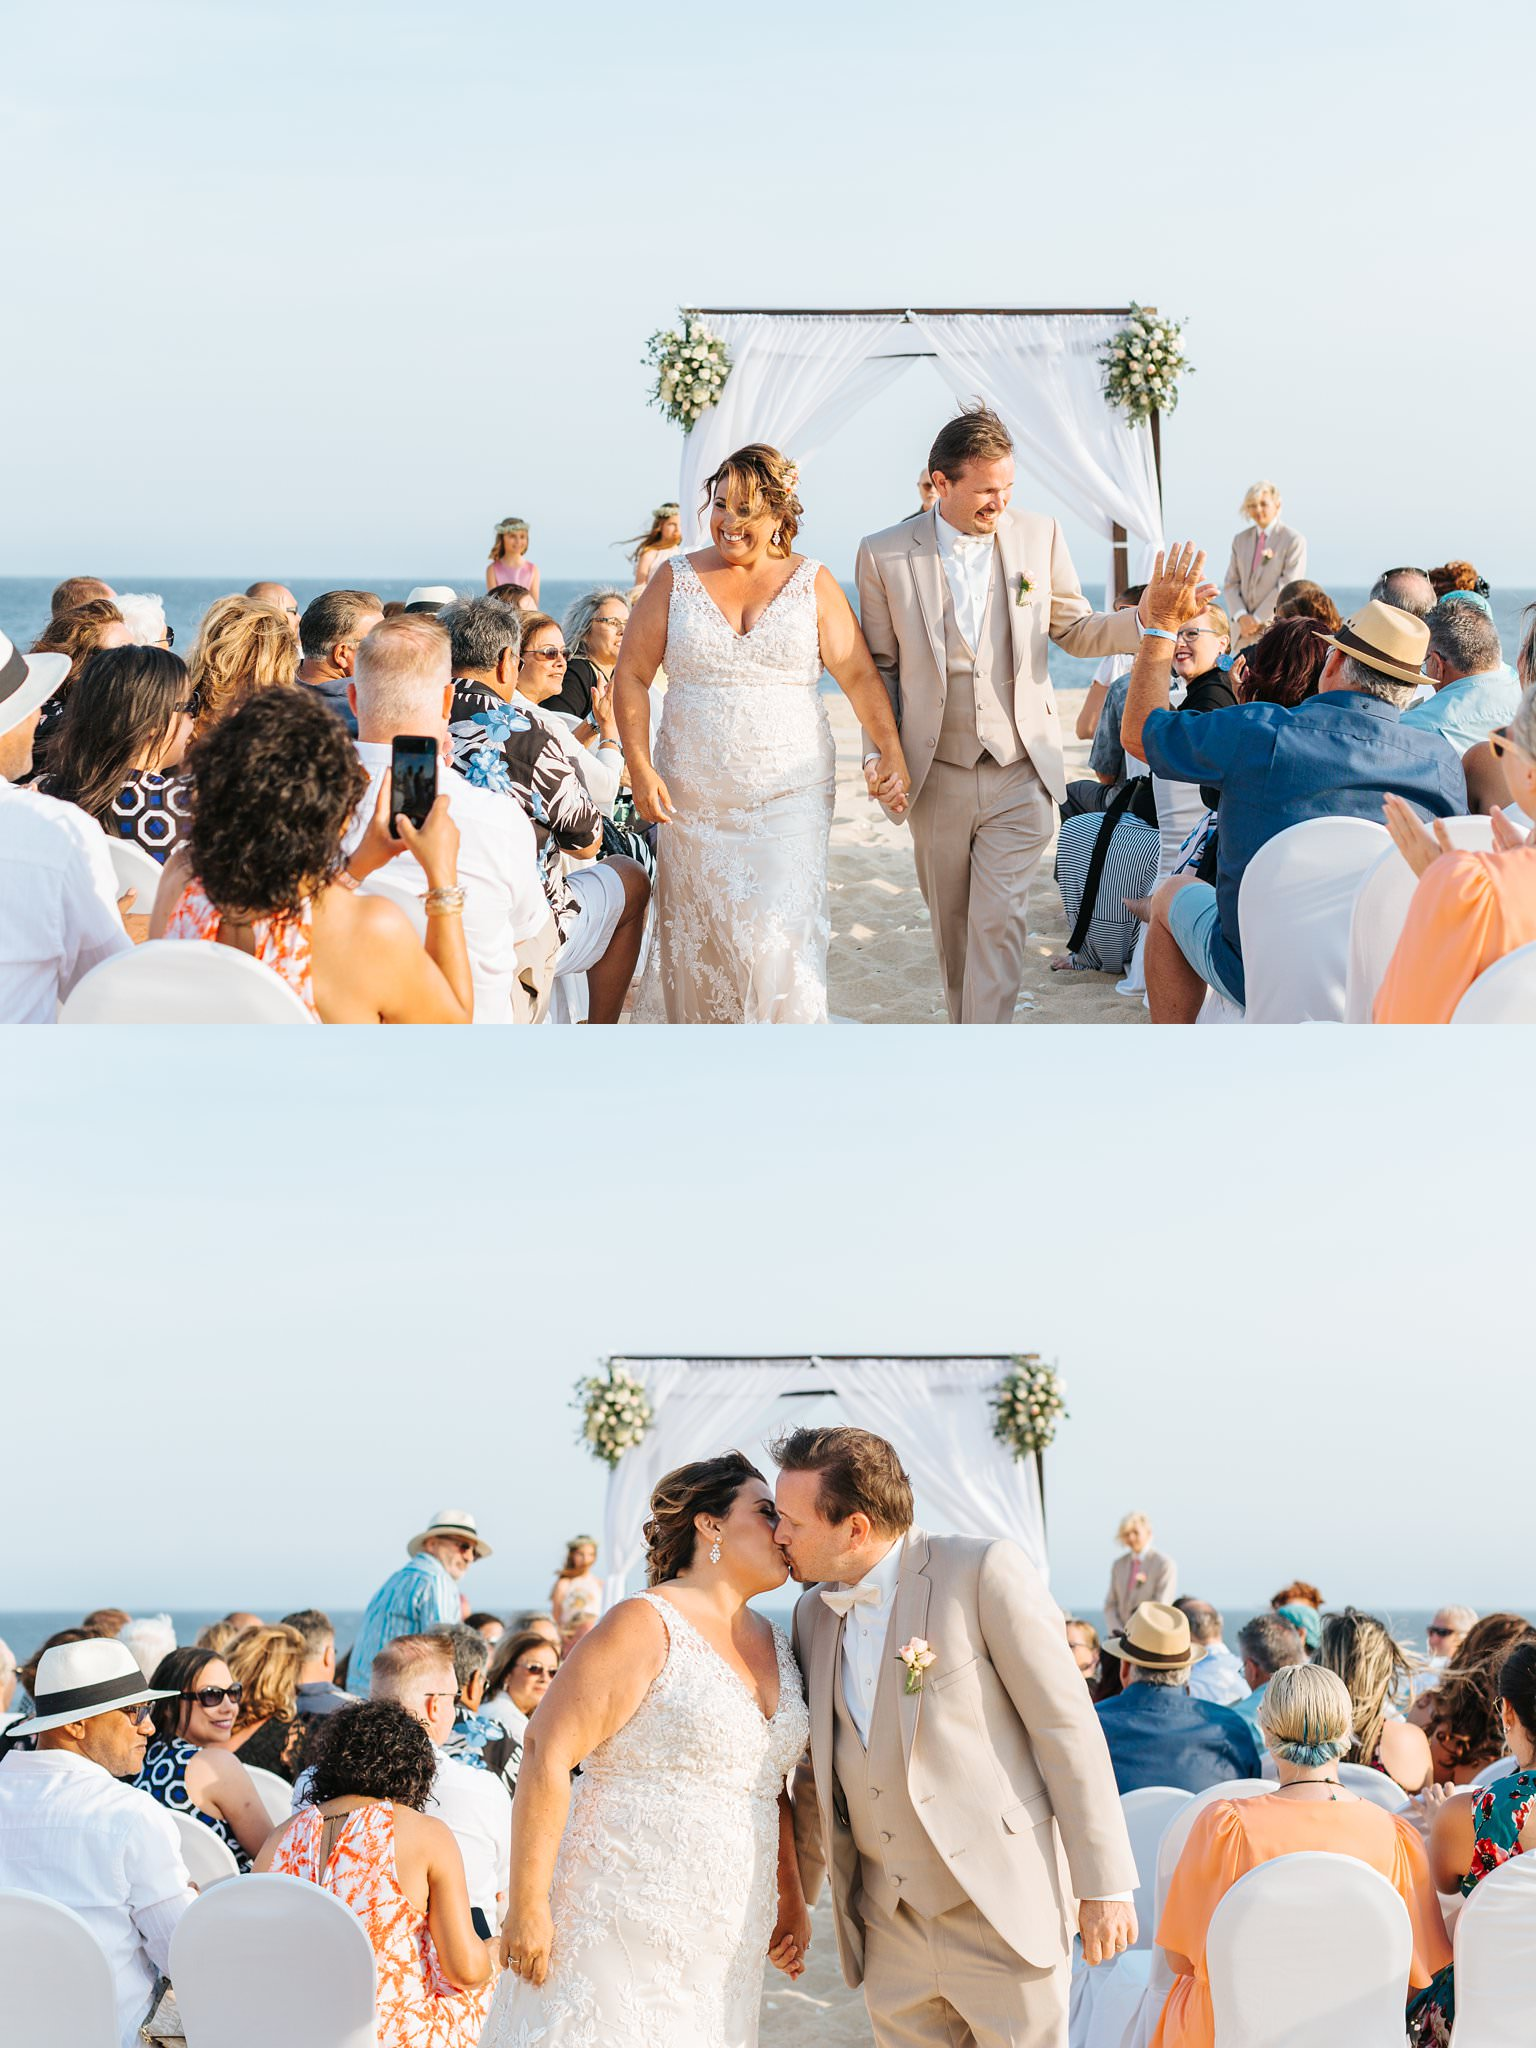 Cabo Resort Beach Wedding - Destination Wedding Photographer - https://brittneyhannonphotography.com